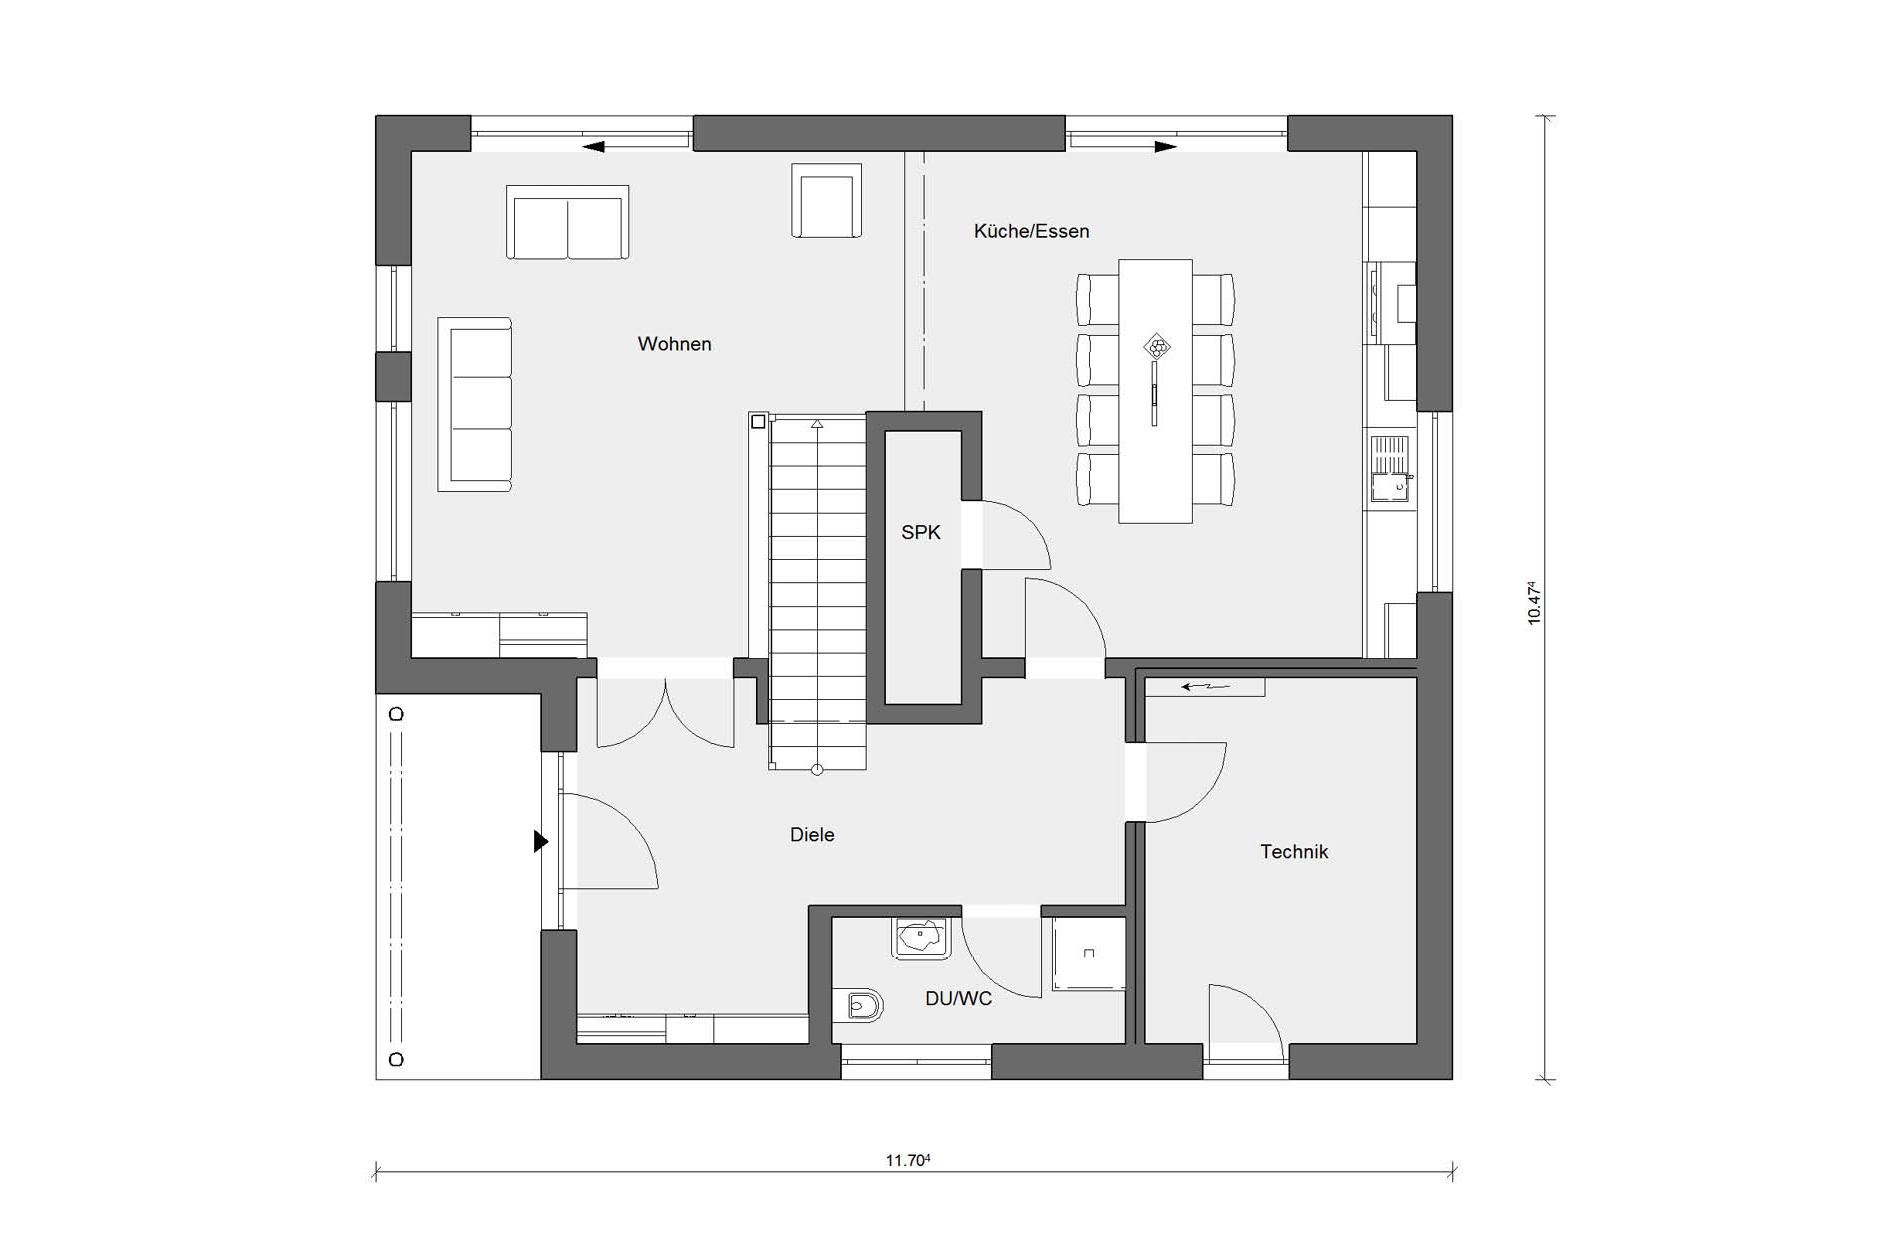 Floor plan ground floor prefabricated house in country style E 20-185.1